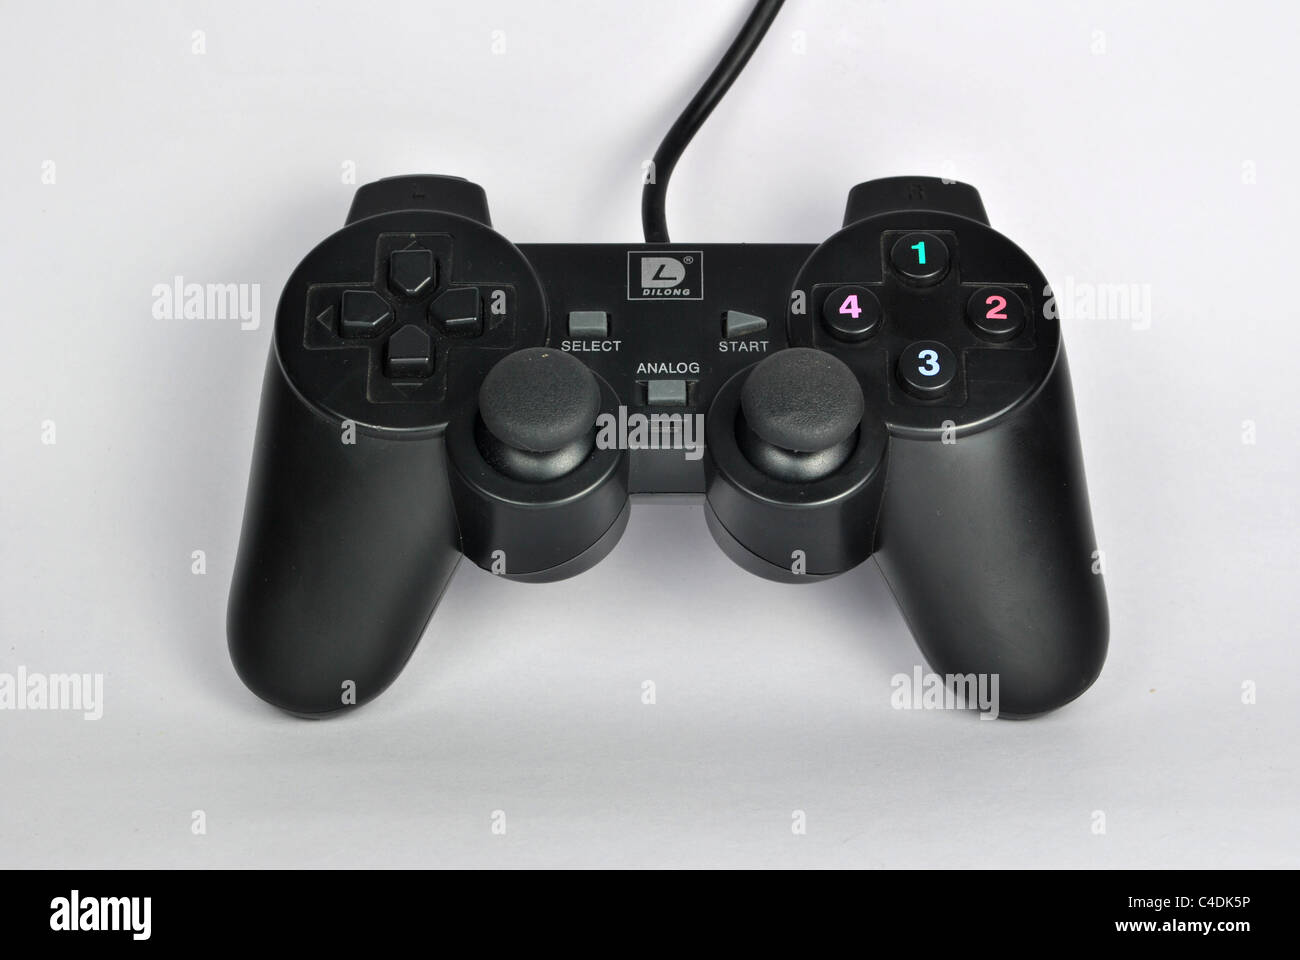 gamepad also called joypad or control pad a type of game controller held in the hand  on white background - Stock Image